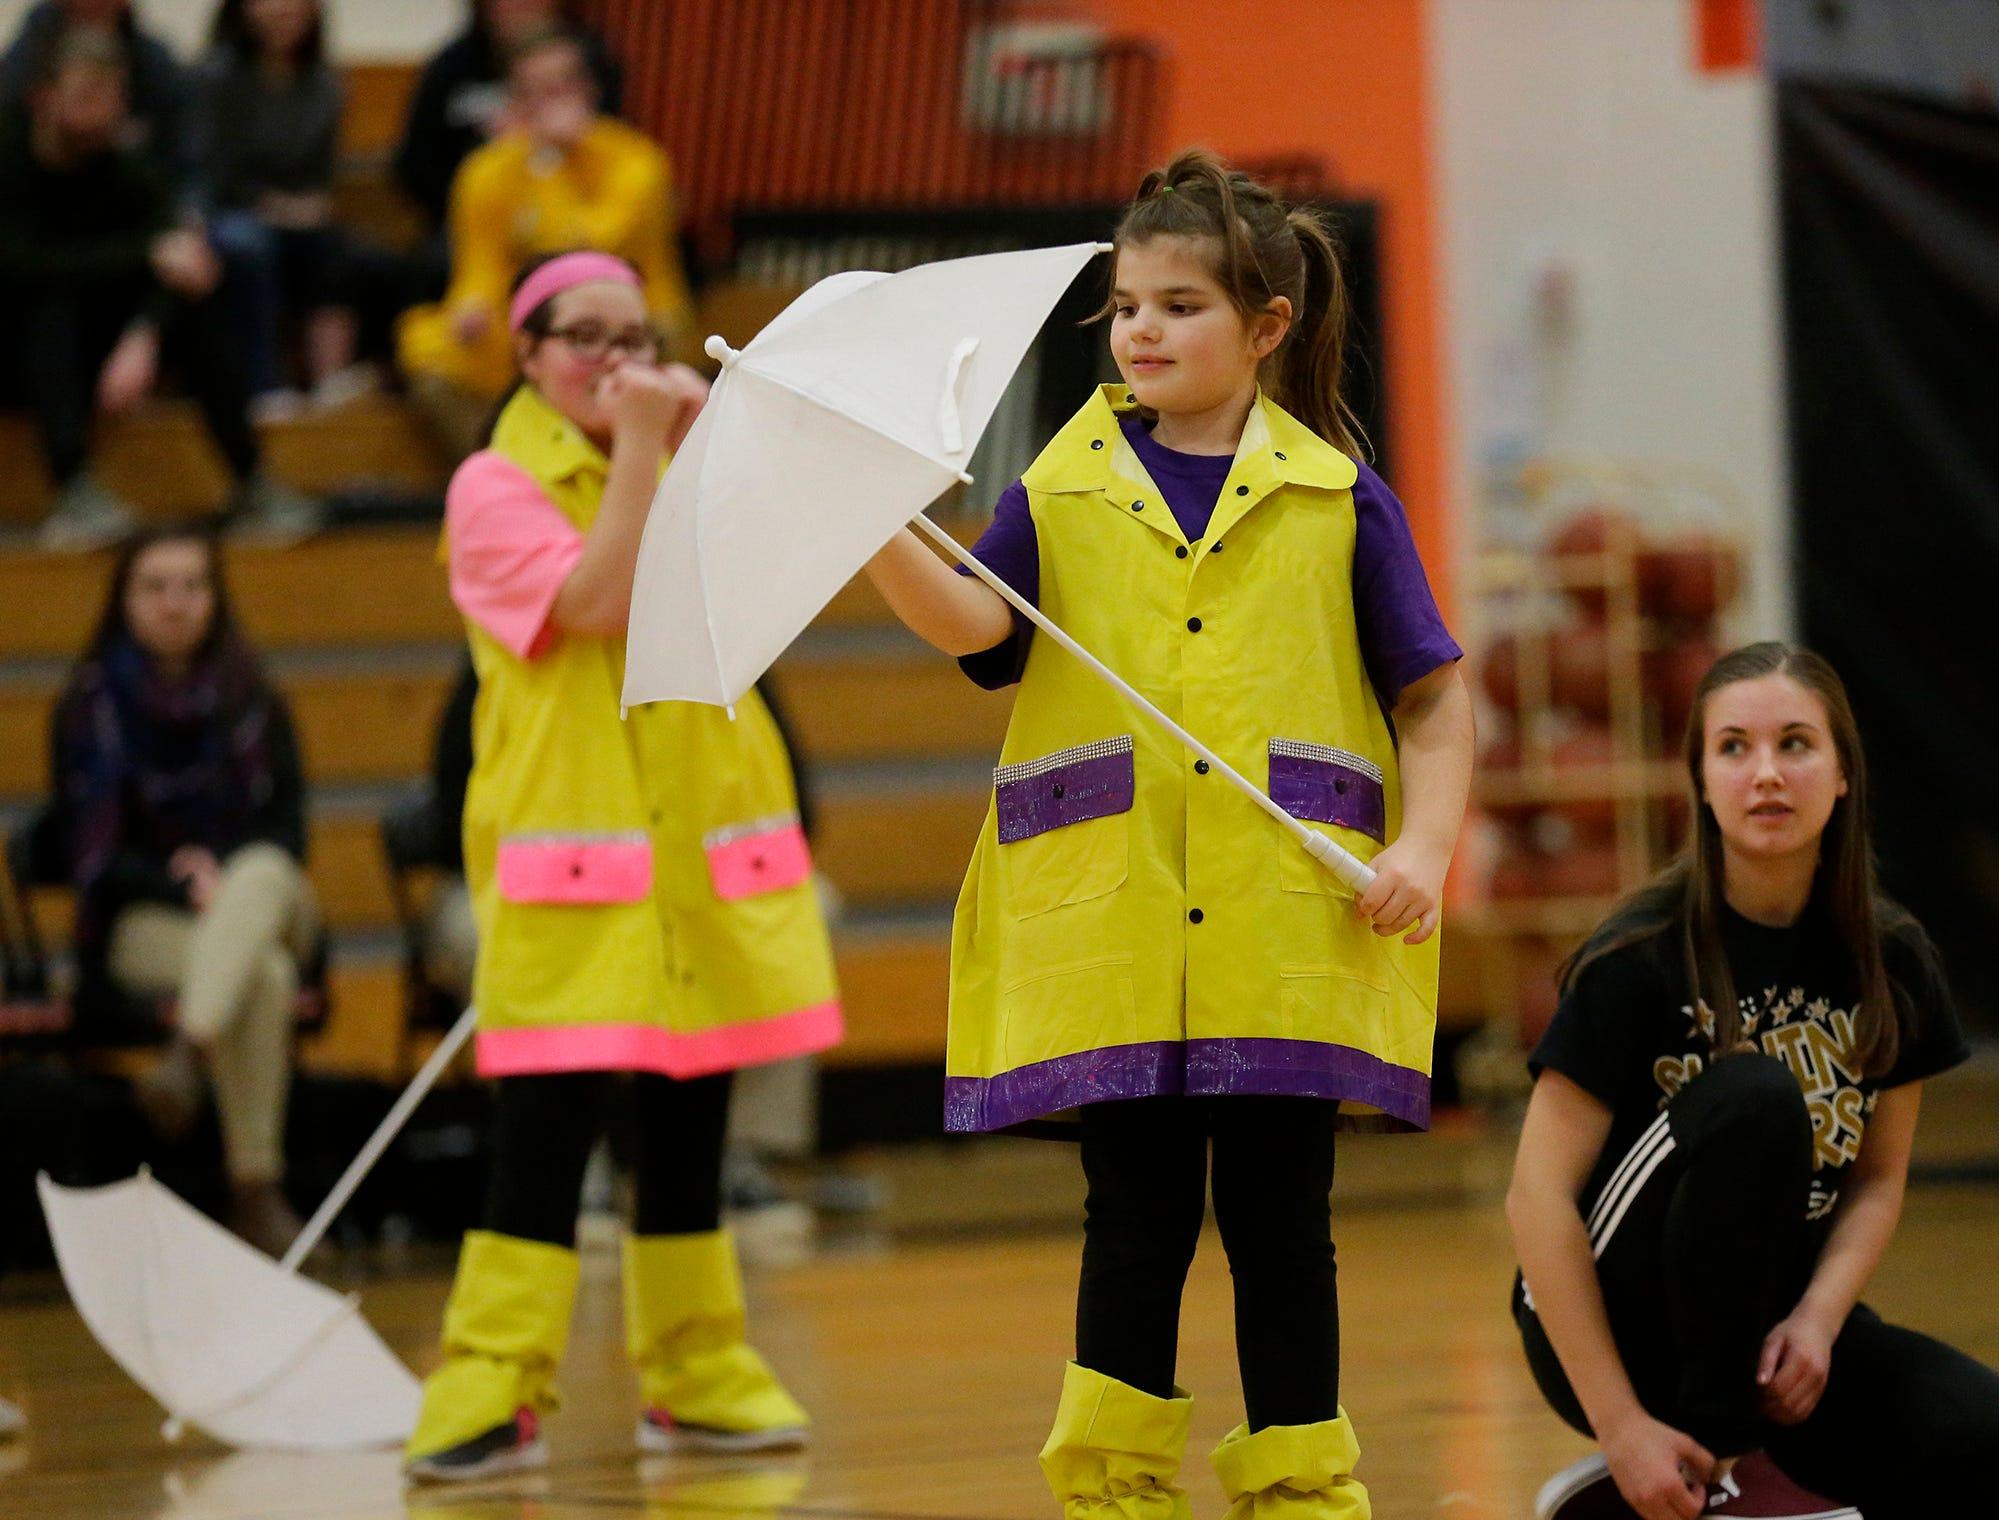 Madison Enright (purple) with the help of Sara Scannell perform with the Shining Stars Dance Team during halftime of the North Fond du Lac High School vs. St. Mary's Springs Academy girls basketball game Jan. 4 at North Fond du Lac High School.